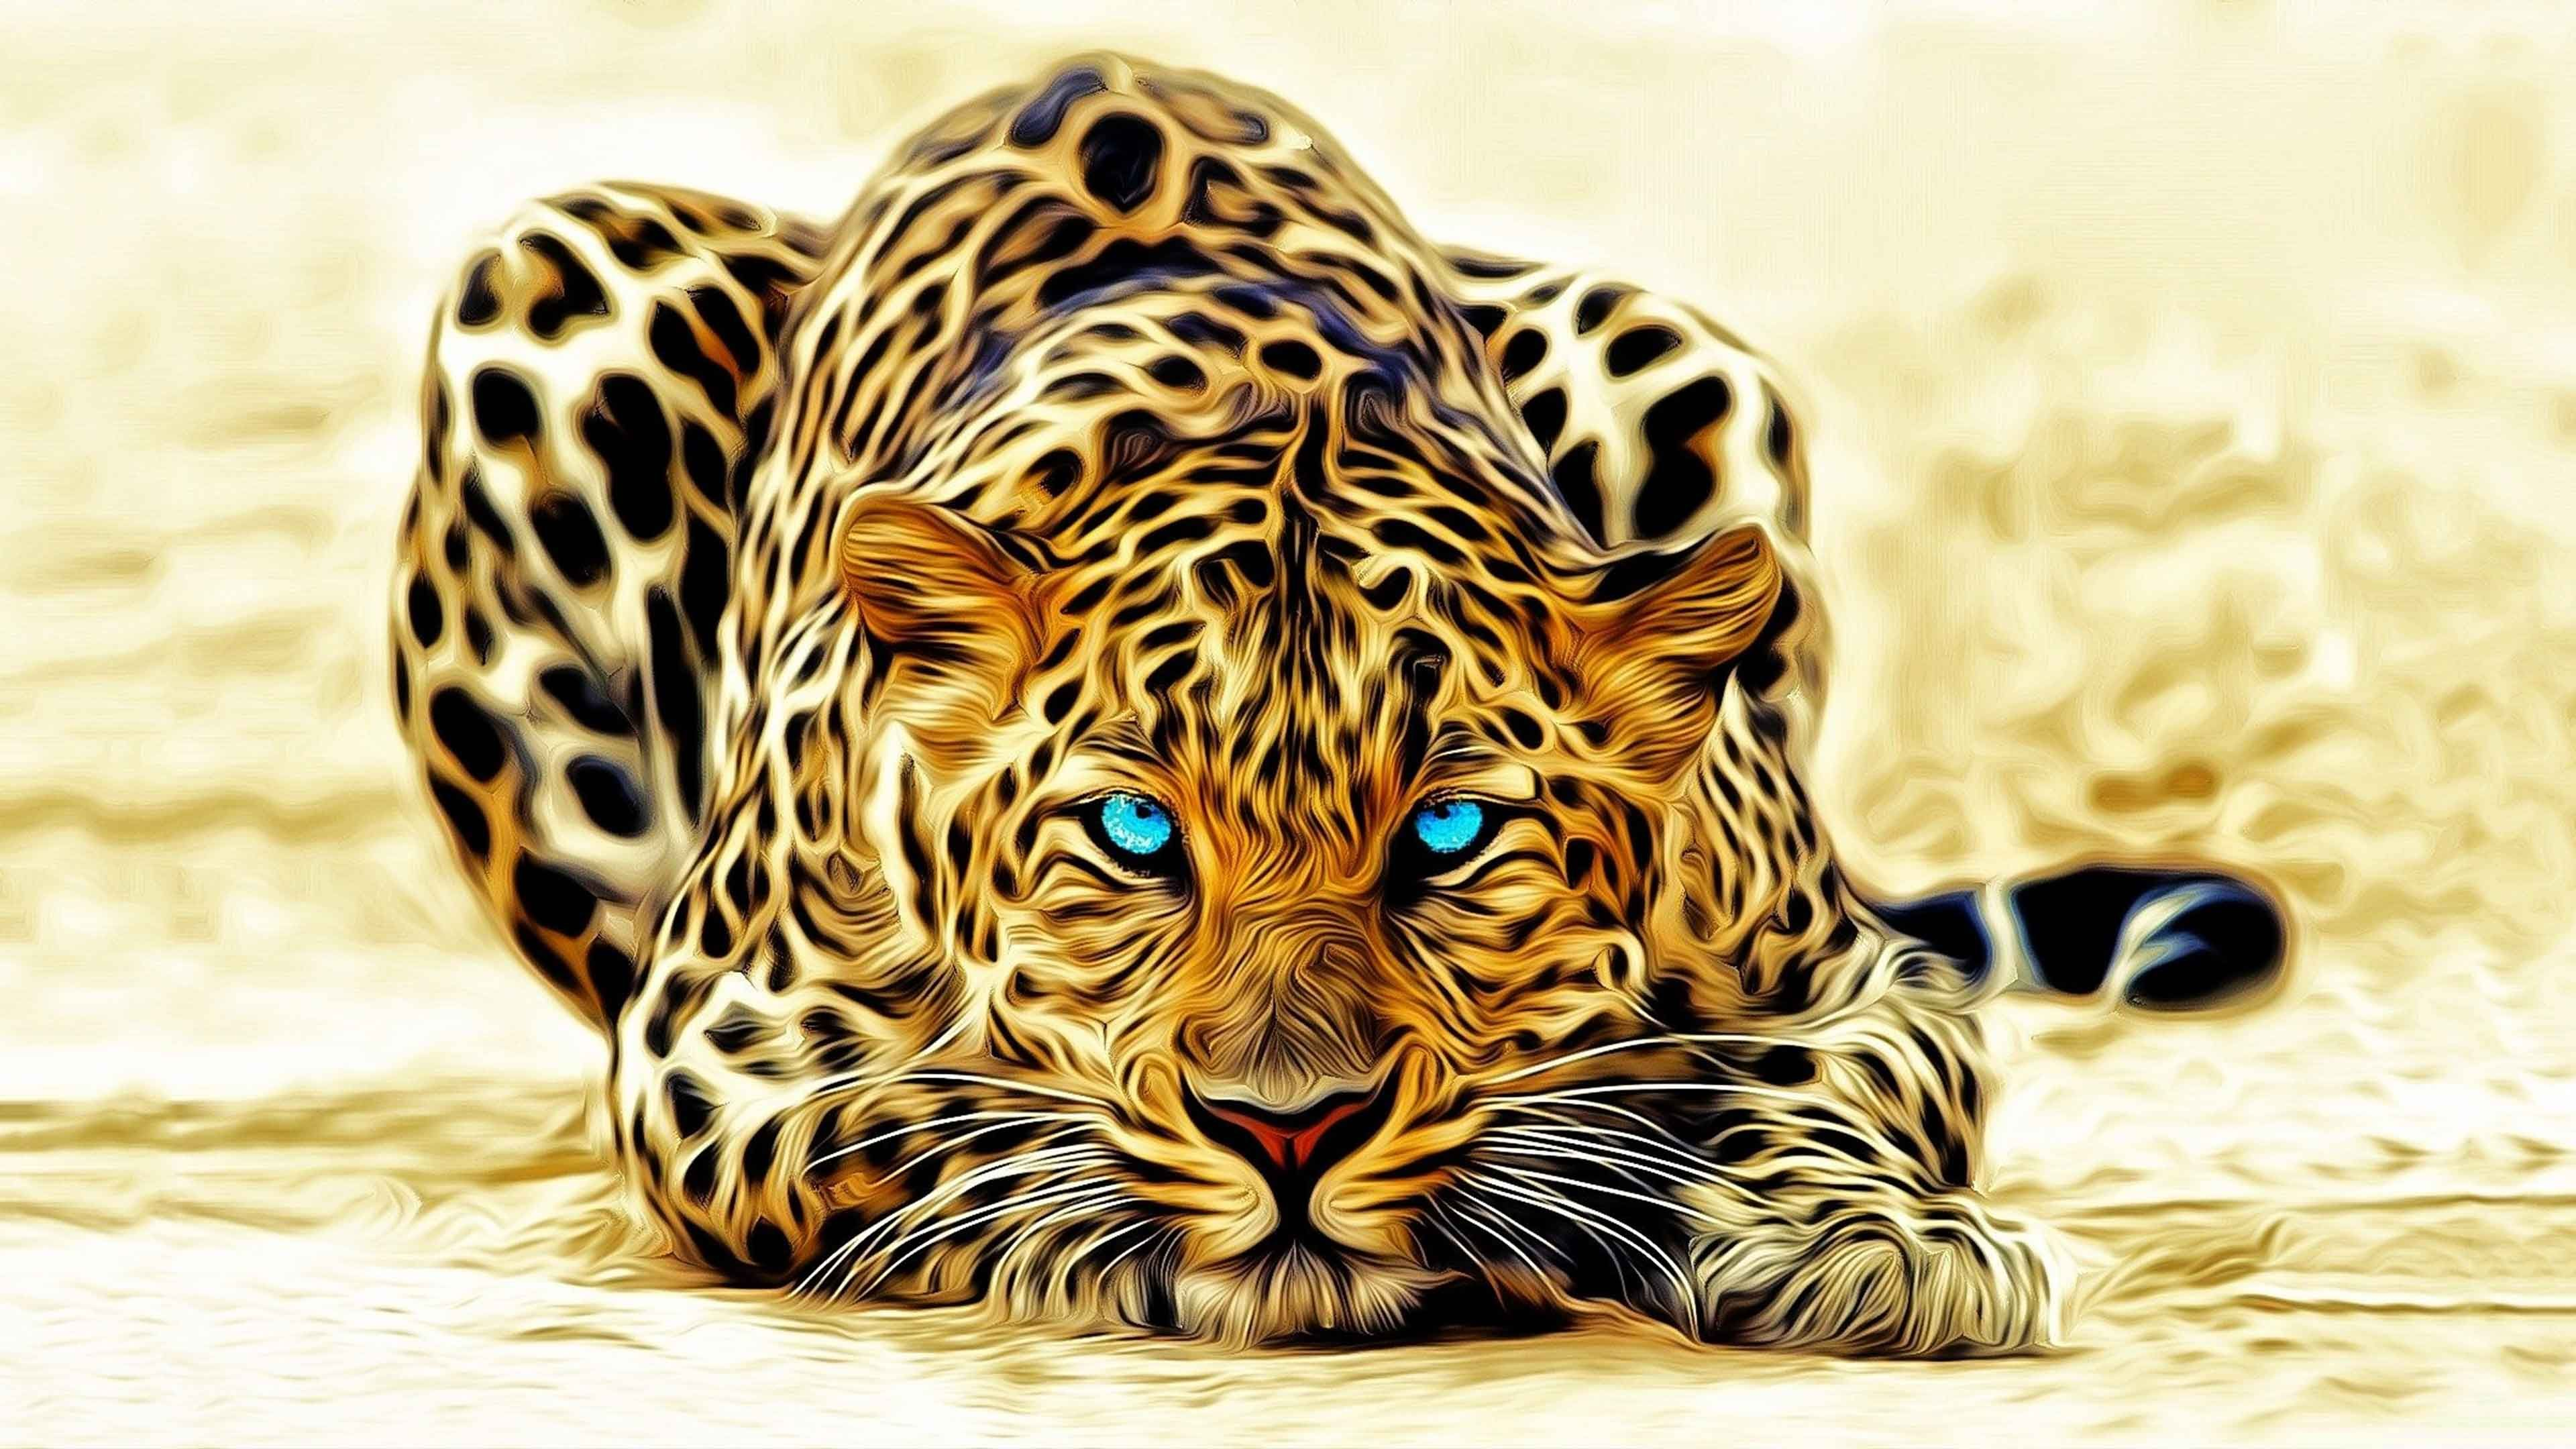 HD 3D Tiger Wallpaper Big cats art, Leopard wallpaper